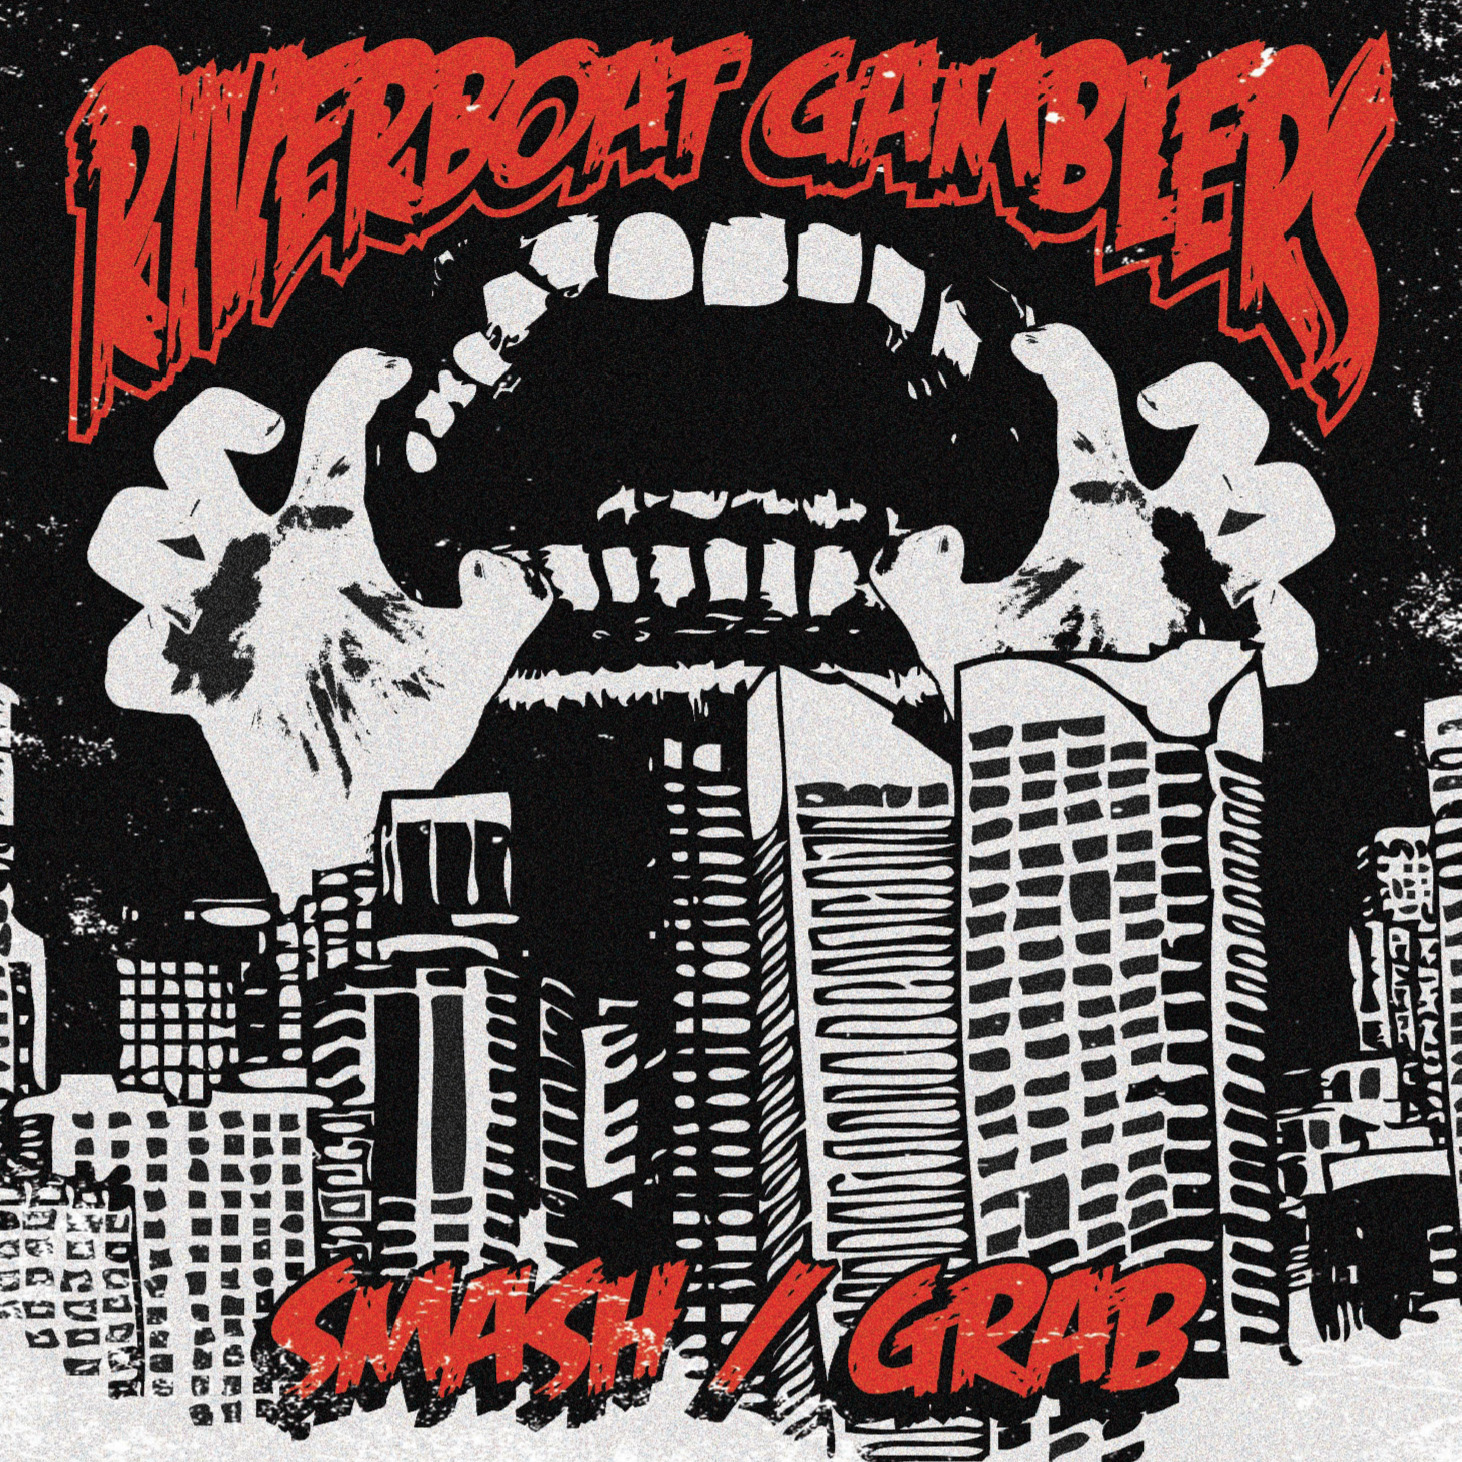 Riverboat Gamblers - Smash/Grab EP (Digital Only, MP3 or FLAC)